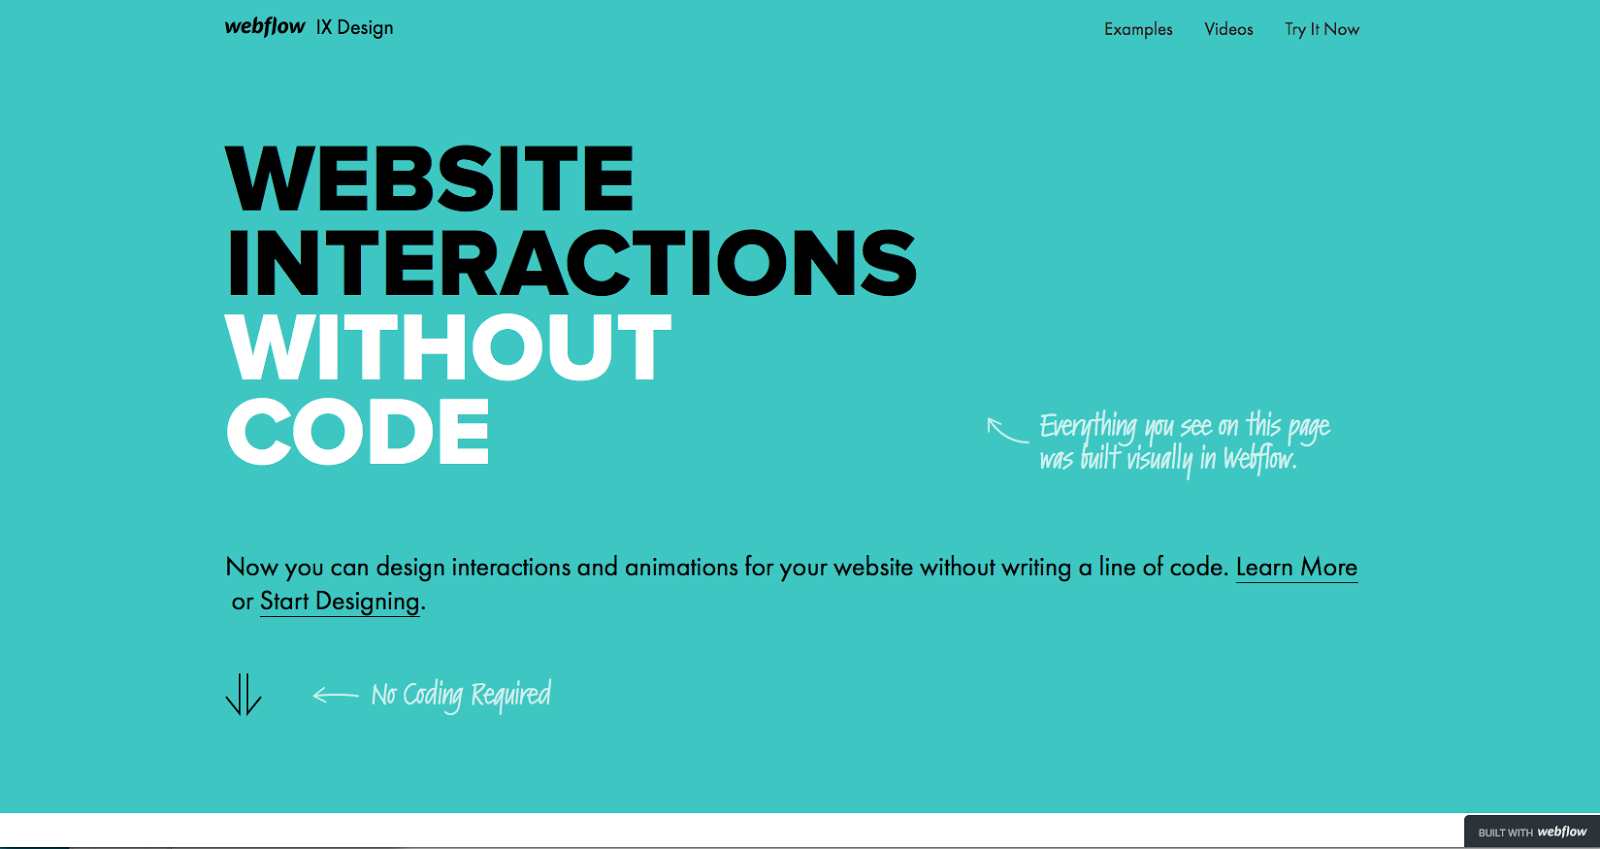 9 landing page design tips that improve UX and conversions | Webflow ...